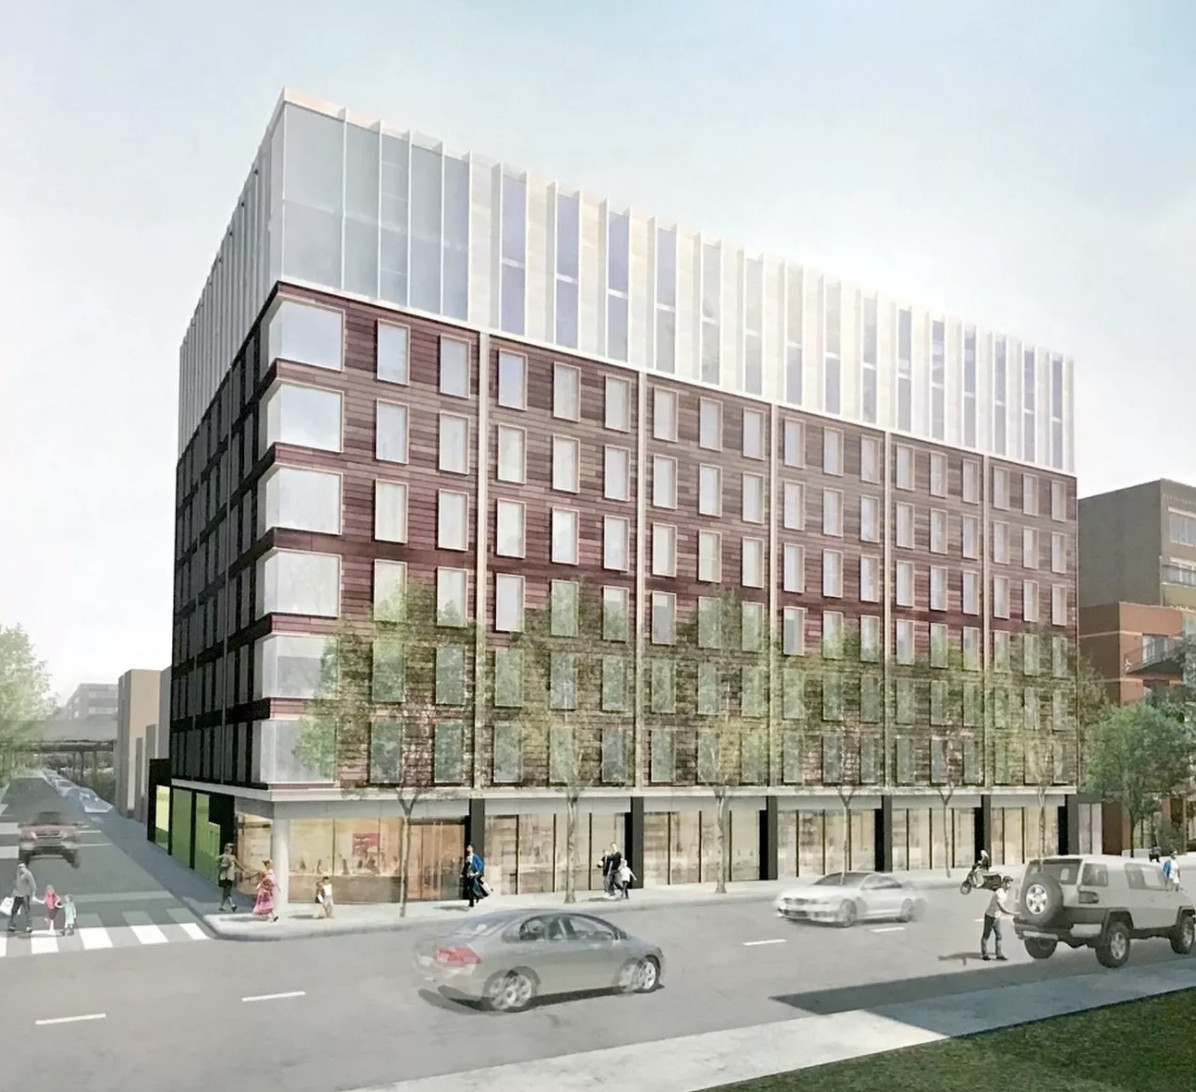 University Of Chicago Dorms Among Projects Seeking City